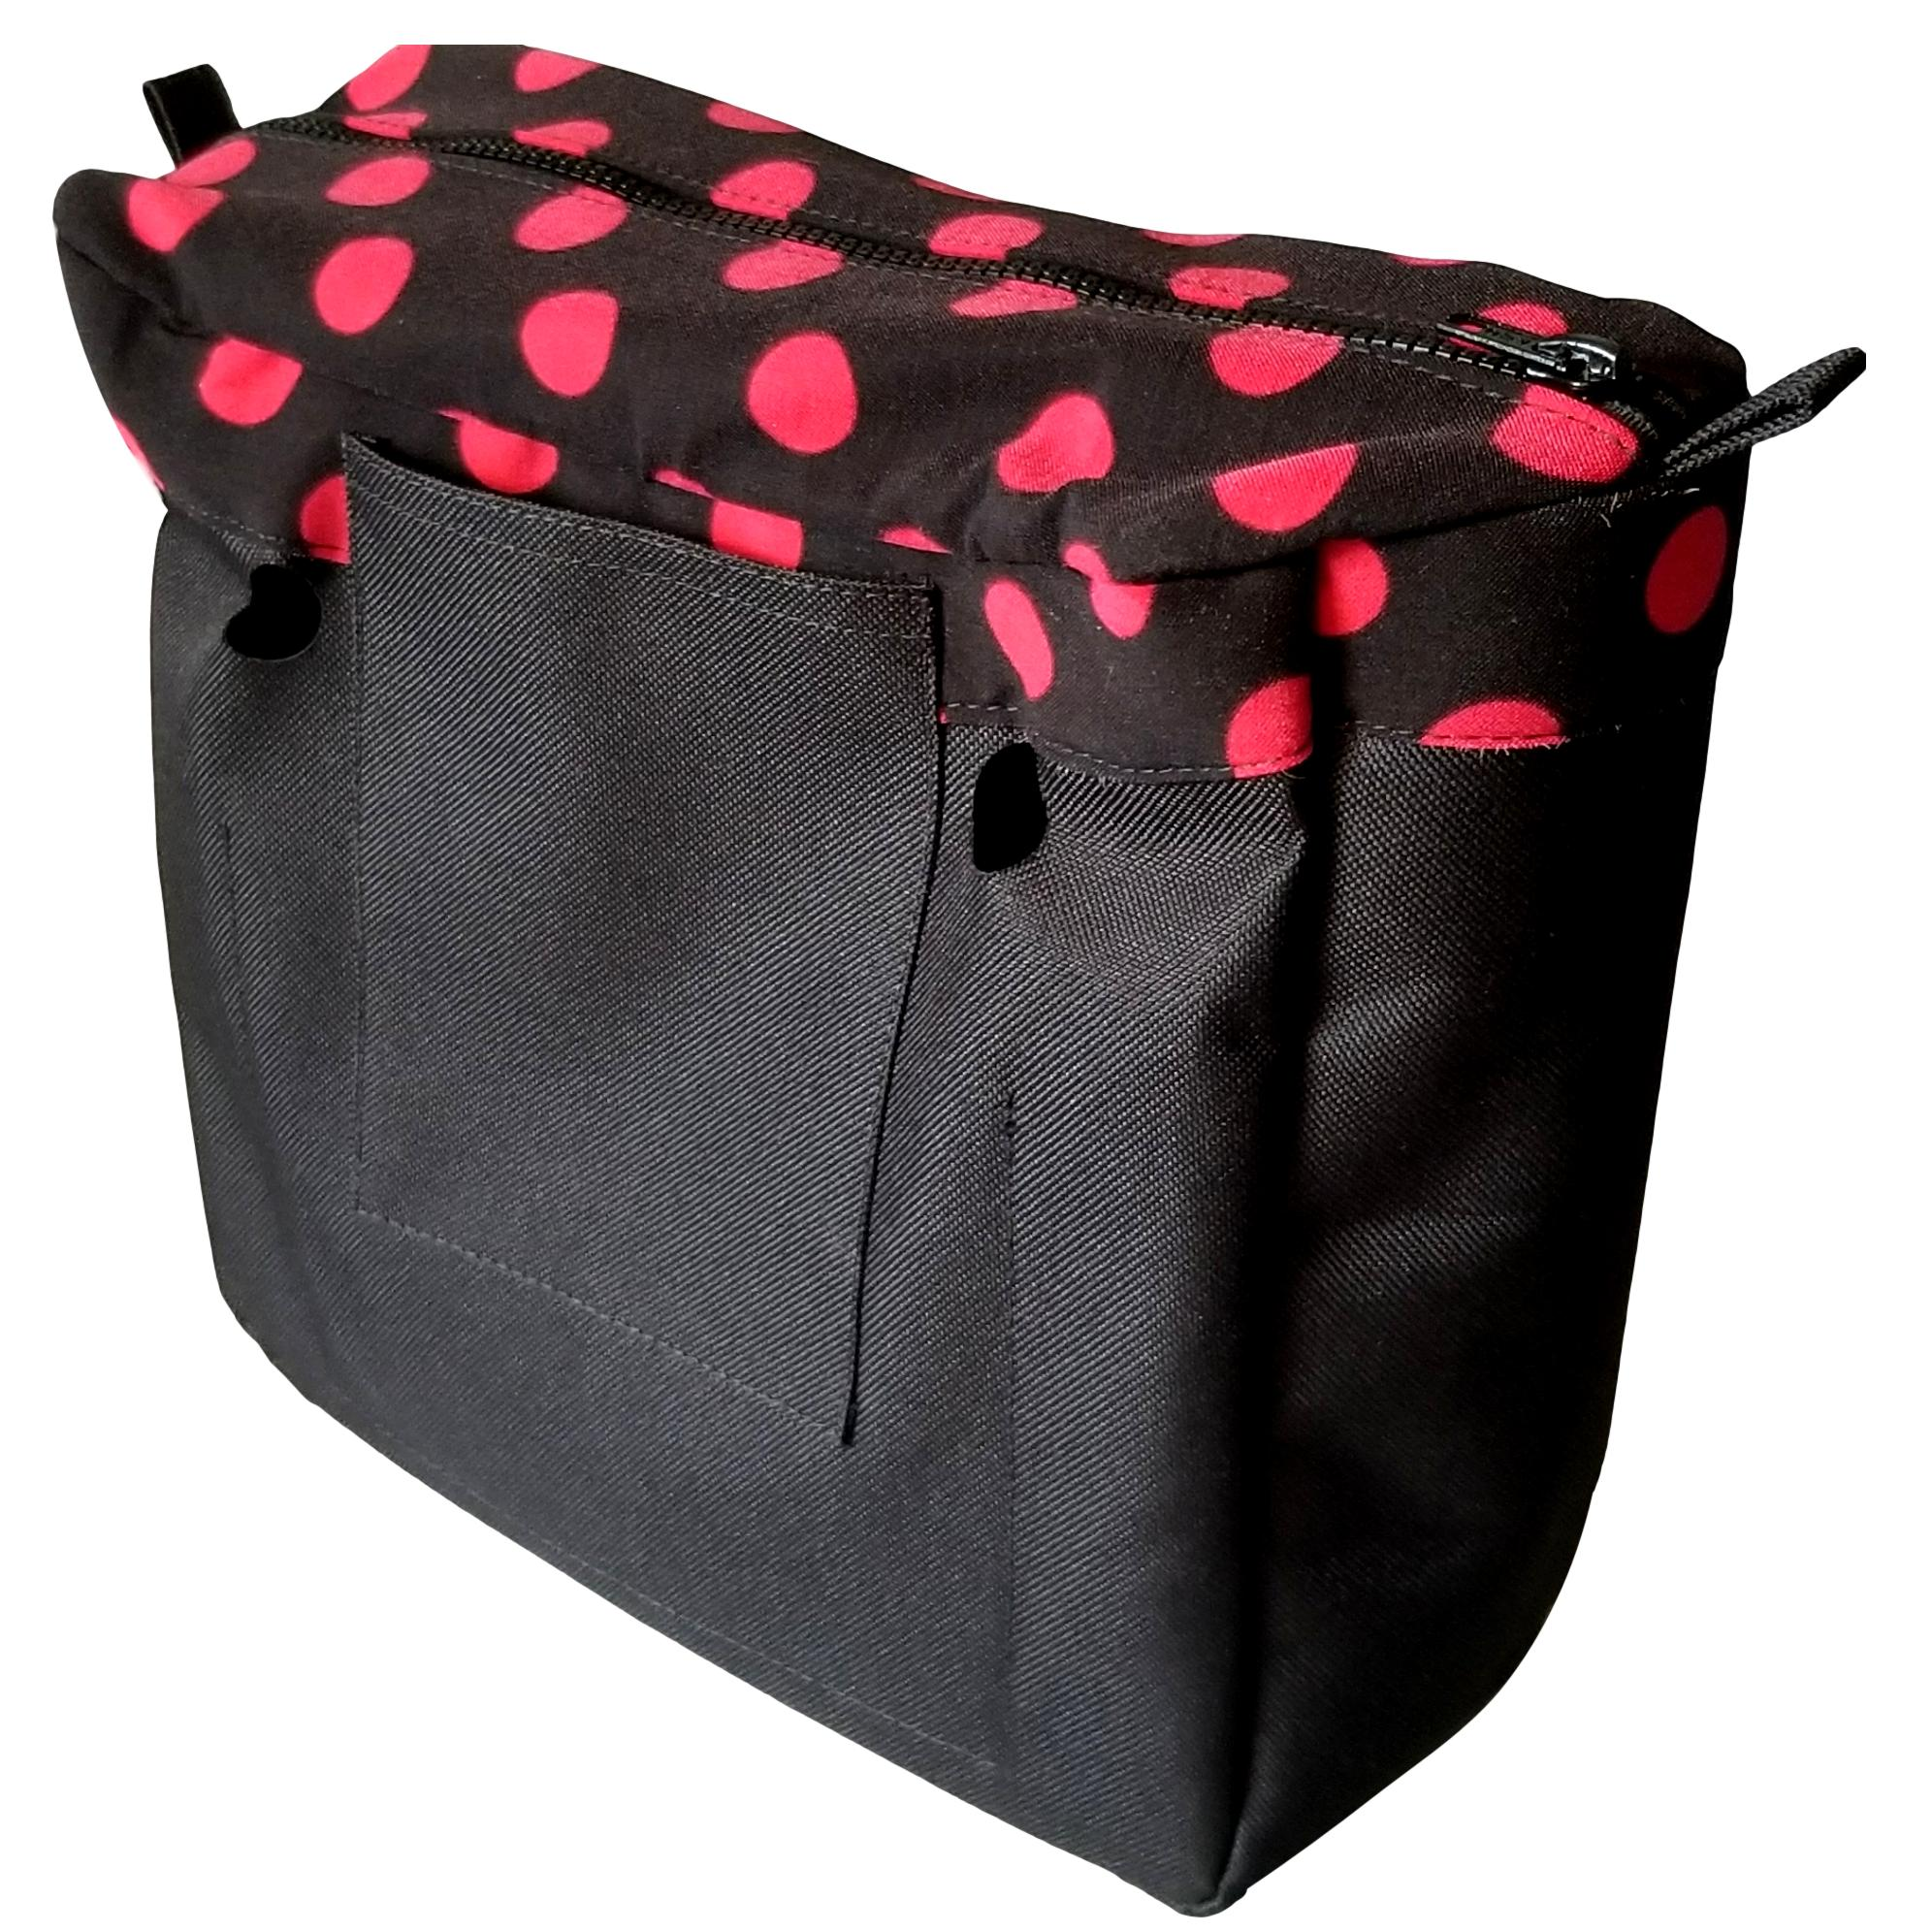 SLO Fashion Black with Red Polka Dots Designer Insert